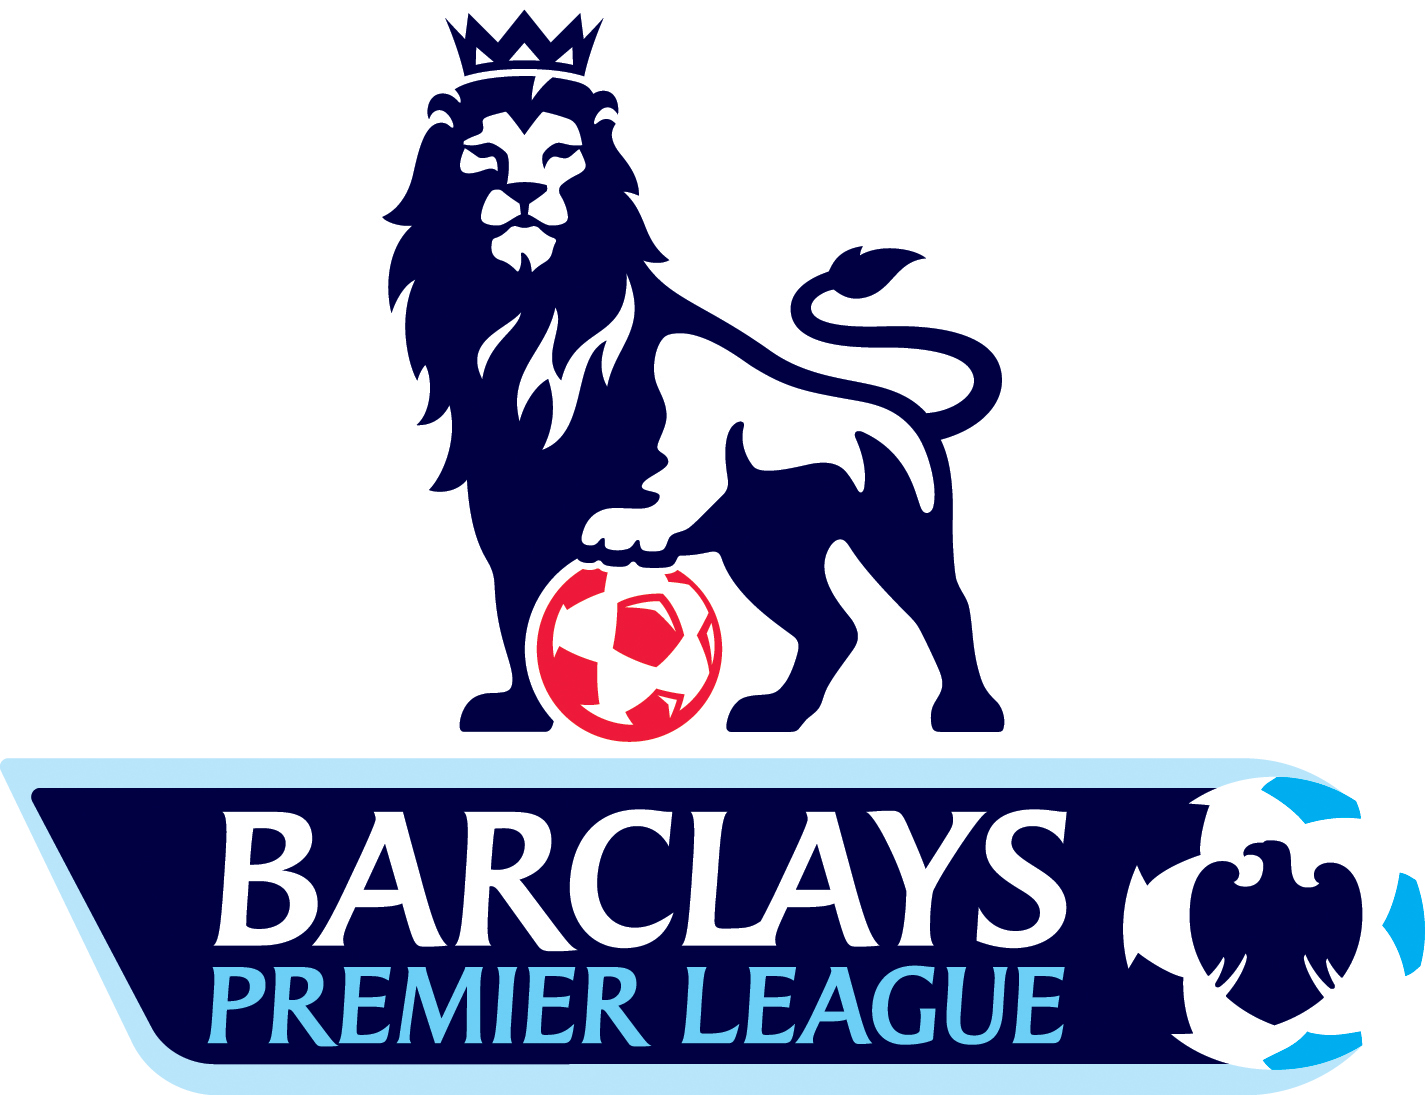 foundation of marketing barclays premier Apply to premier league jobs now hiring on indeedcouk, the world's largest job site.